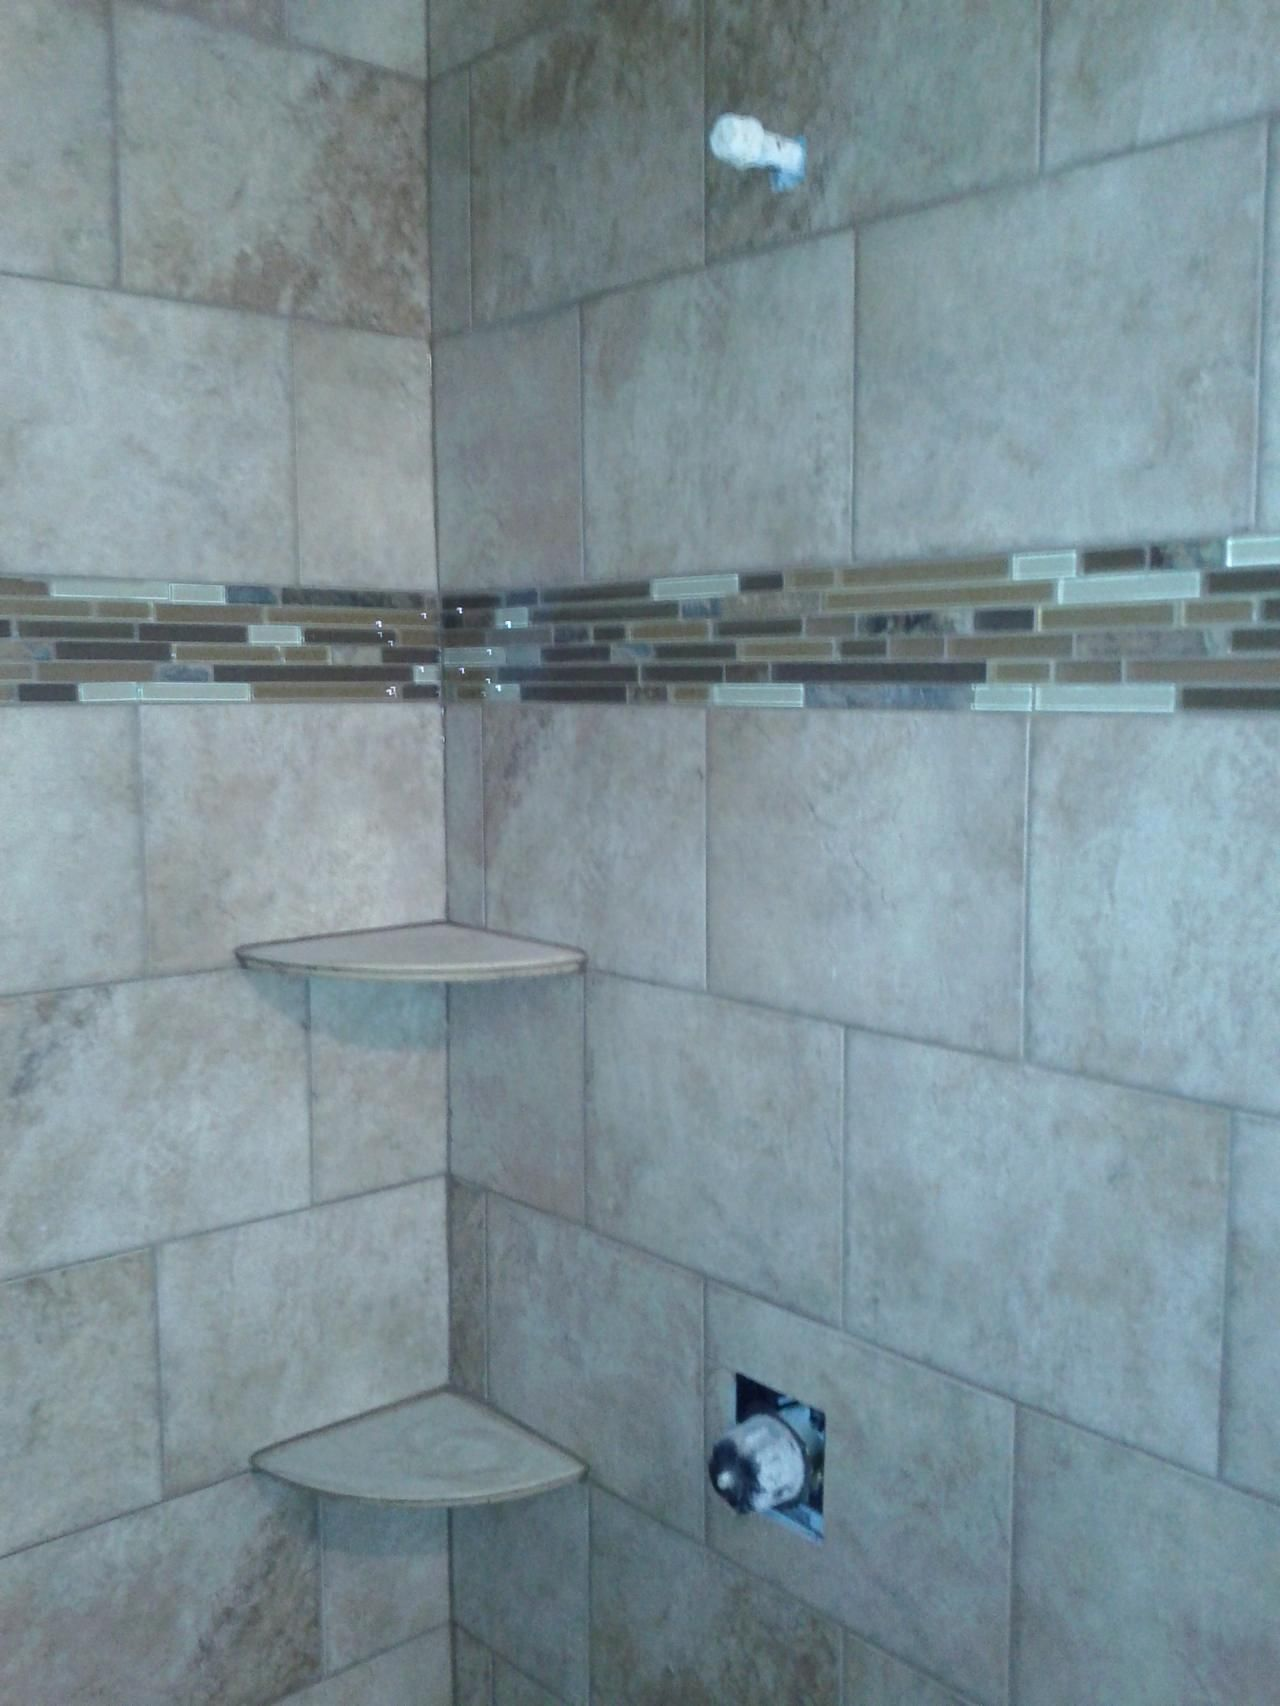 Shower Wall Tile Design bathroom Shower Tile Images Picture Shows A Brick Pattern Tile Shower With Shelves Bathroom Shower Designstile